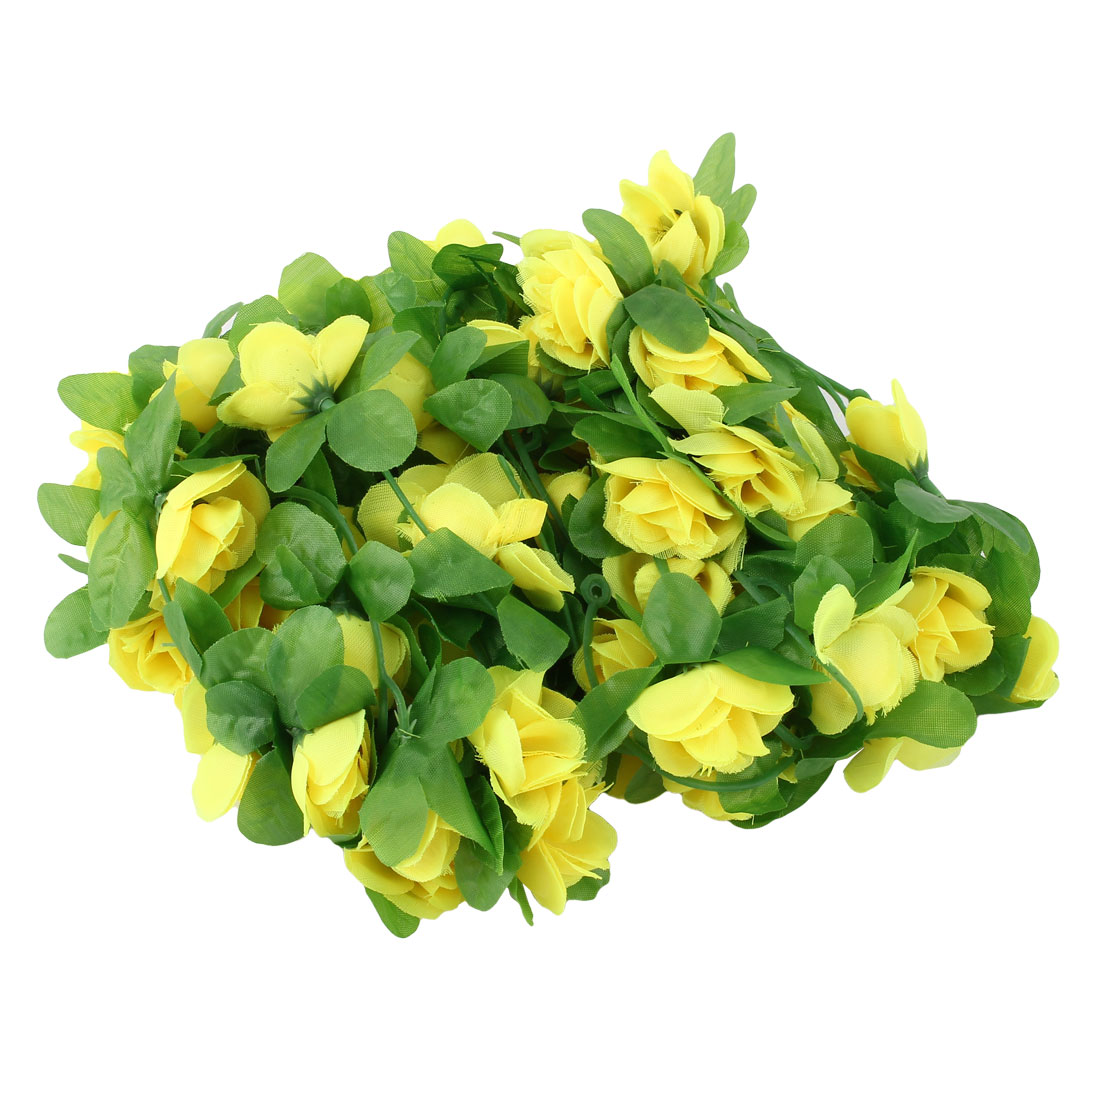 Home Wedding Plastic Artificial Flower Hanging Ivy Vine Yellow 7.2ft Length 2pcs